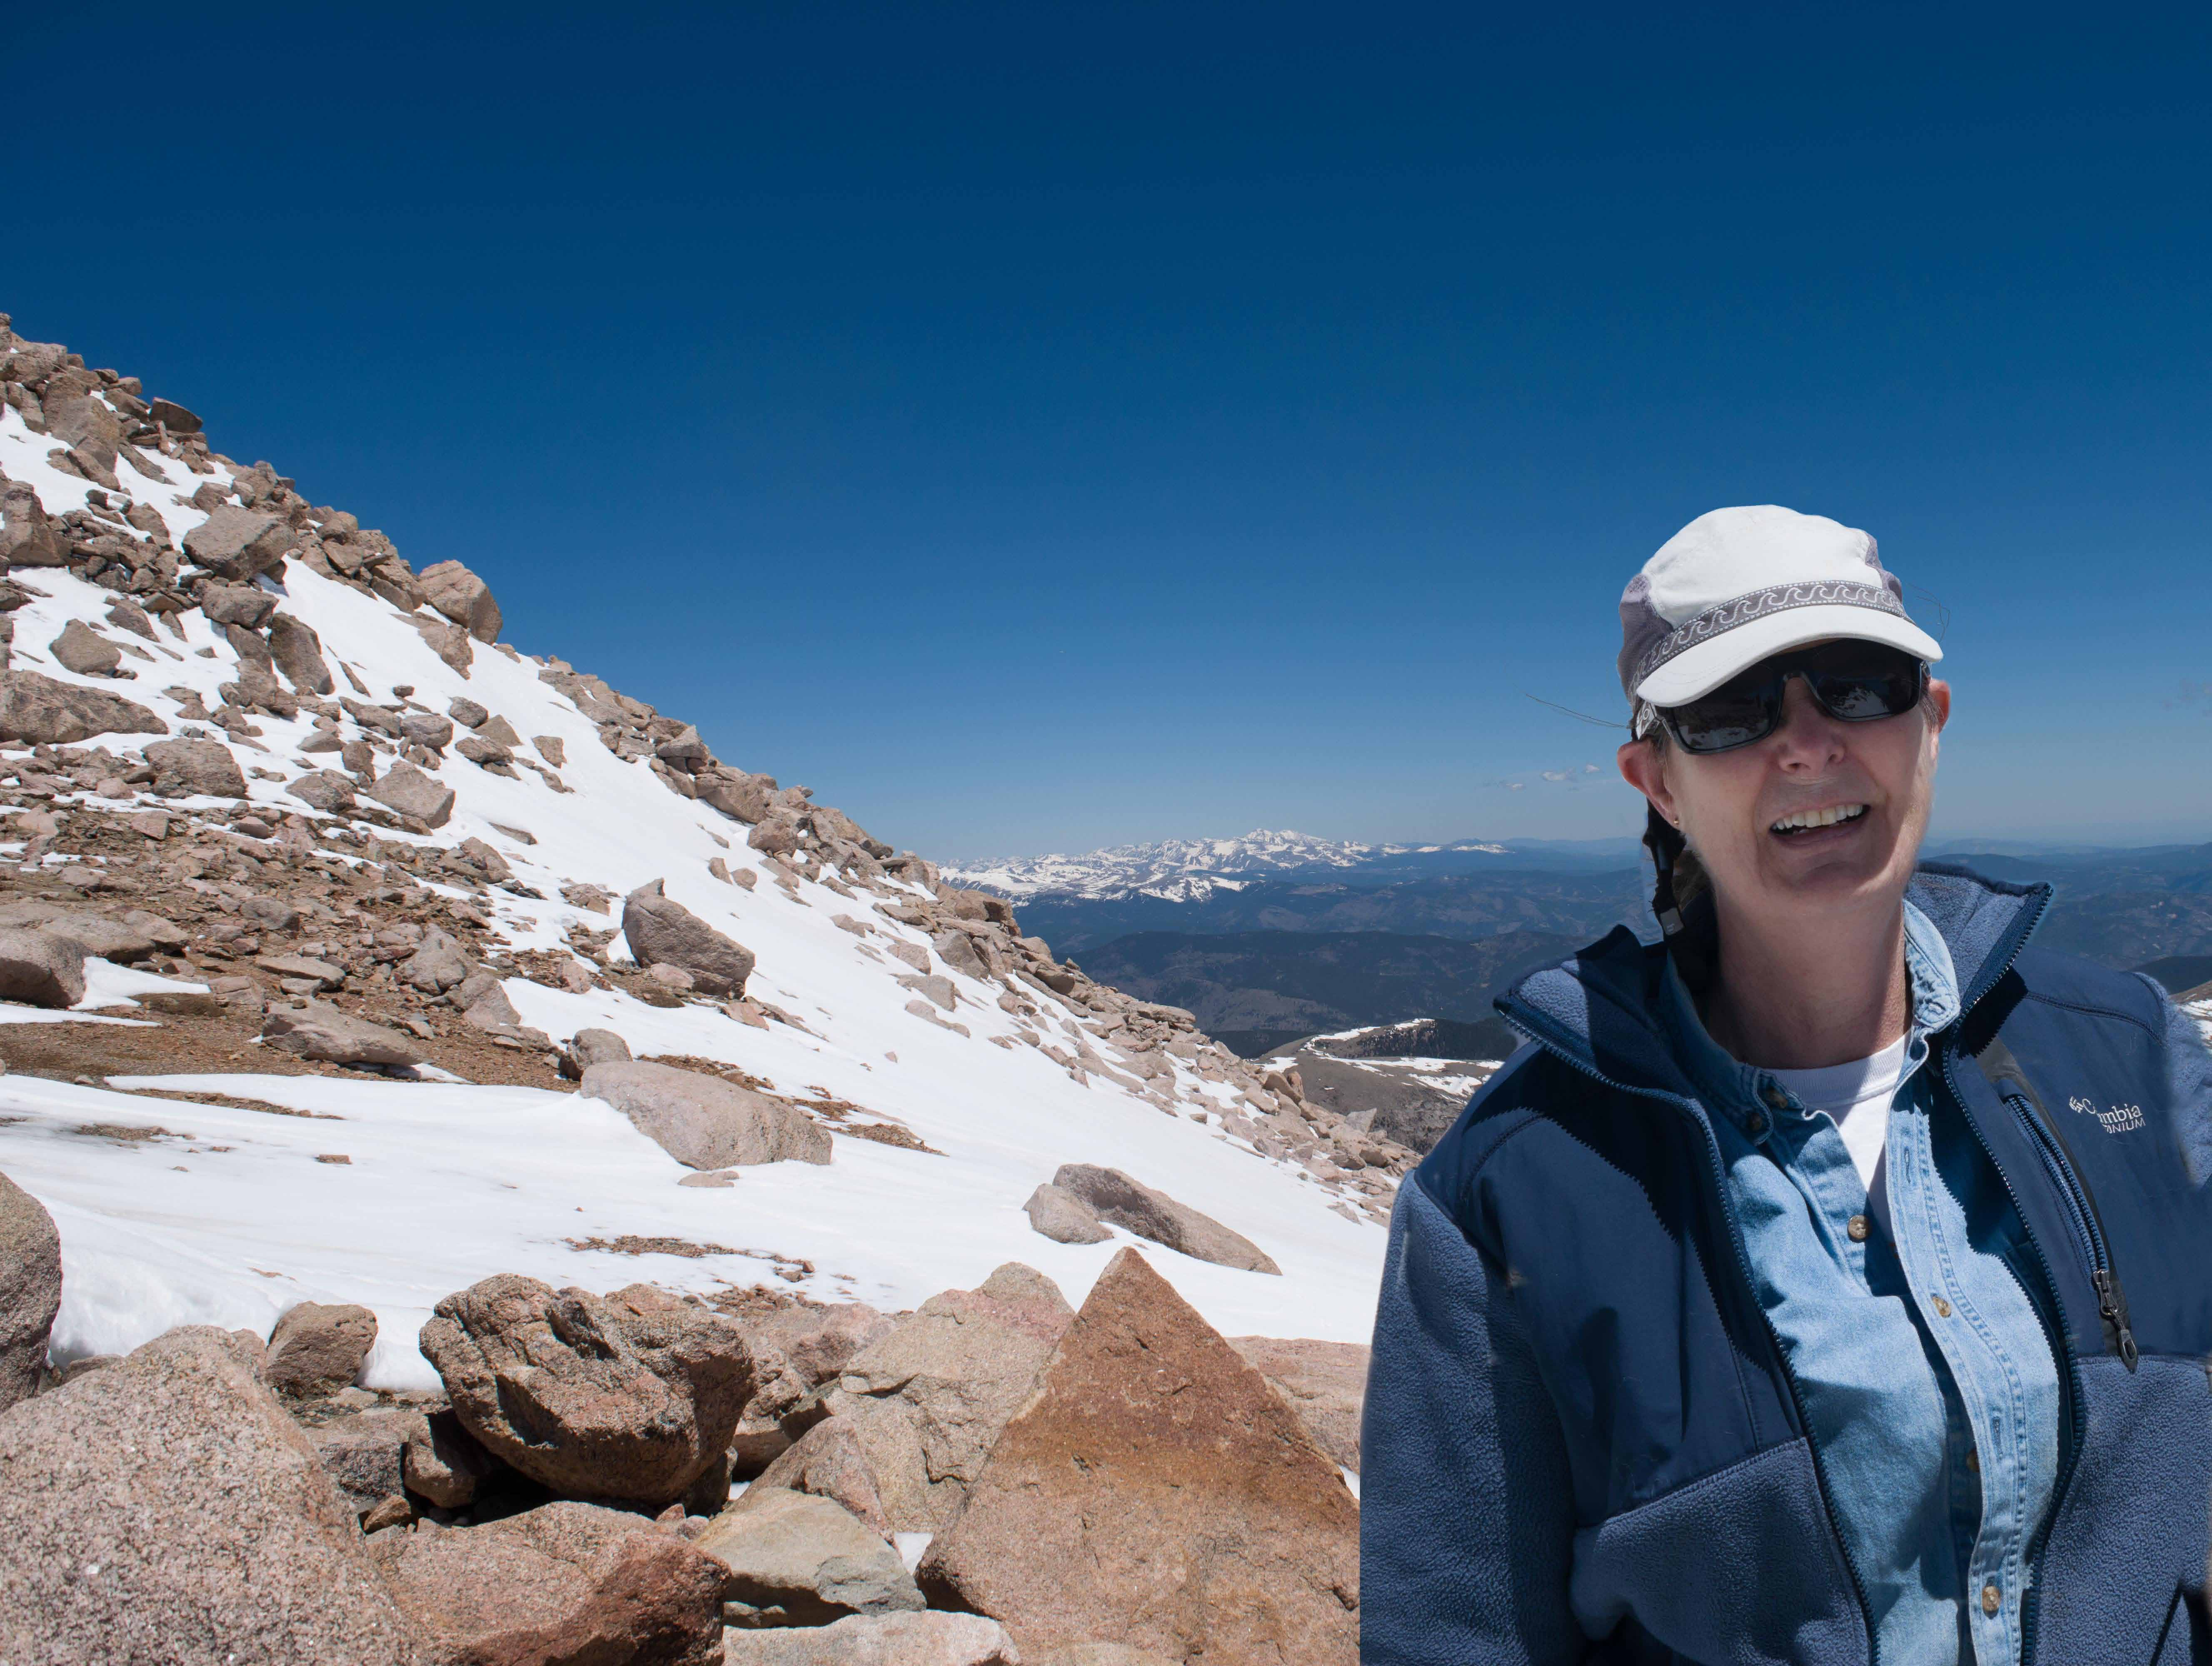 Amy on Mount Evans. Longs Peak, sixty miles away in Rocky Mountain National Park, is in the background. Yes, the sky really was THAT blue.